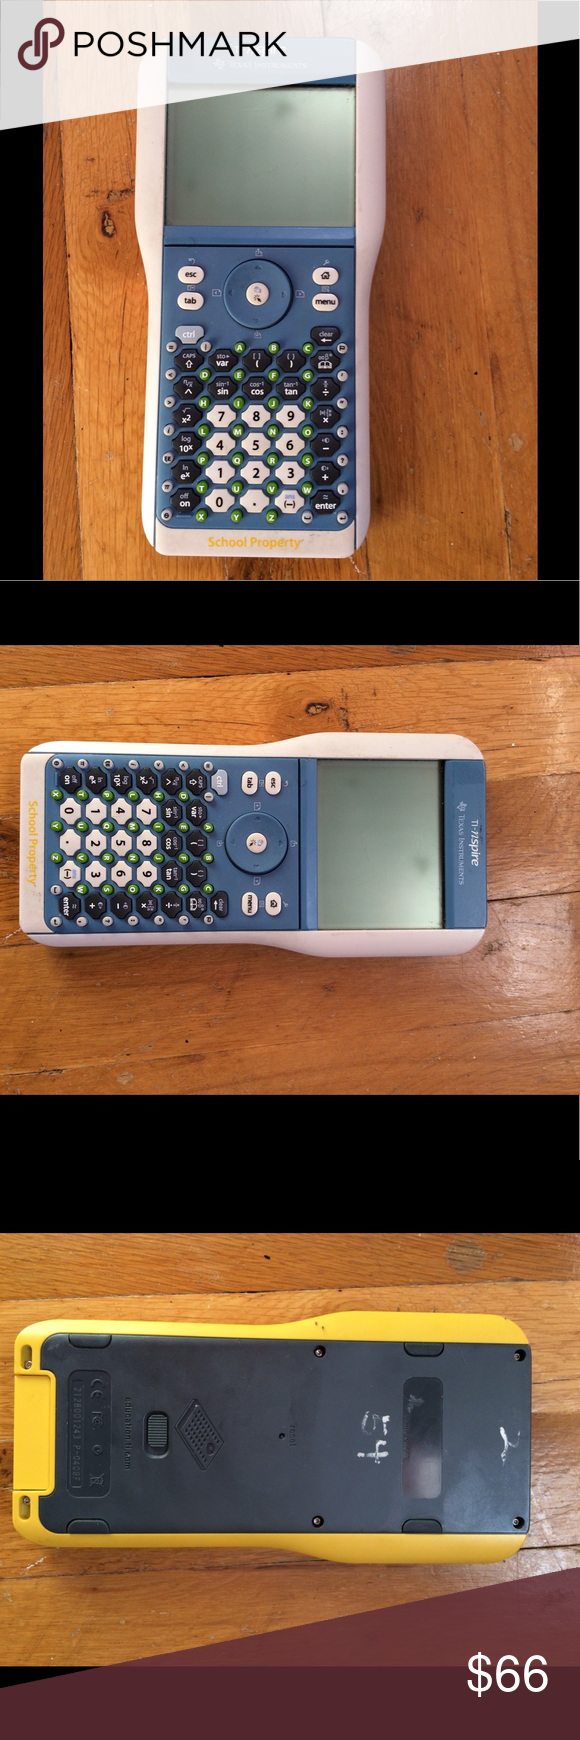 Texas Instruments TInspire Graphing calculator Great for